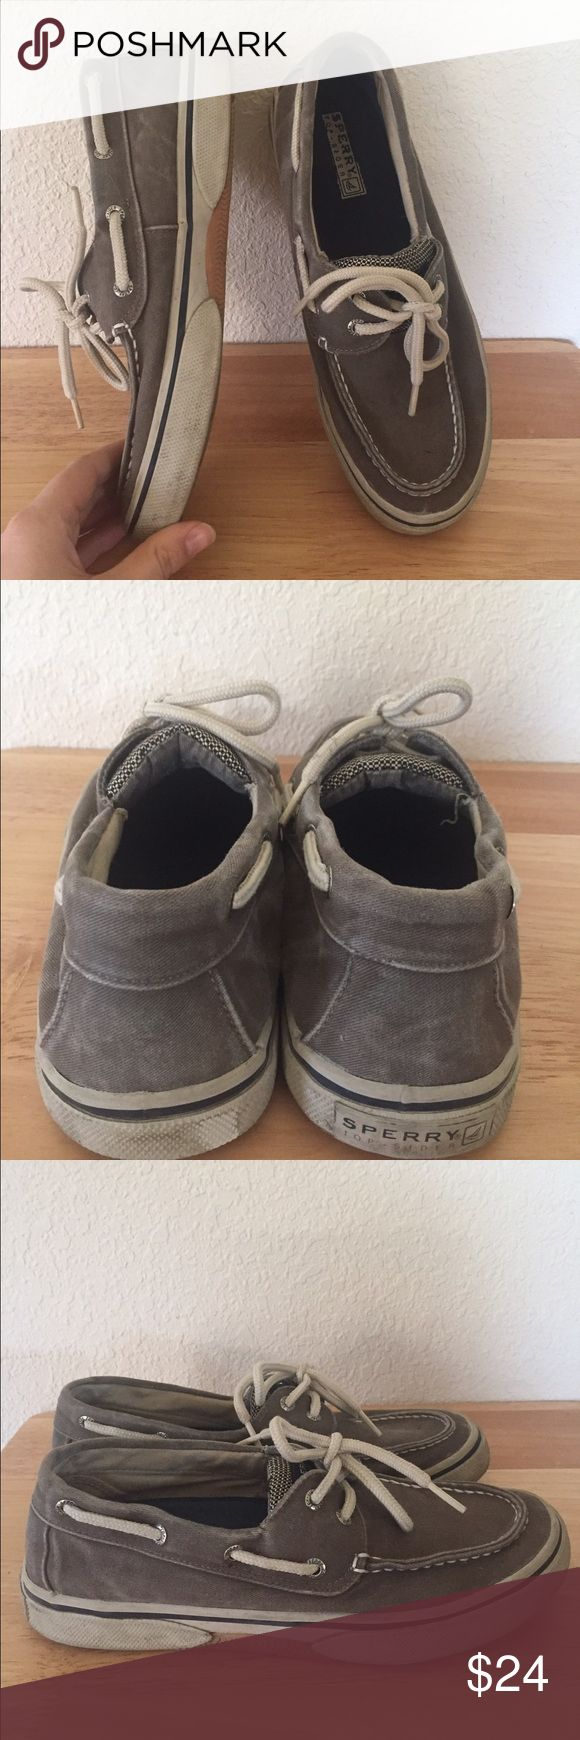 Men's faded Sperry Topsiders Men's Sperry Topsiders in a greyish taupe color. They are a size 8. Structurally in good condition, but fading to the shoe, and rubber is somewhat dirty, and Sperry is worn off the back of one of the shoes. #sperrys #mens #shoefie #sperrytopsiders Sperry Top-Sider Shoes Loafers & Slip-Ons